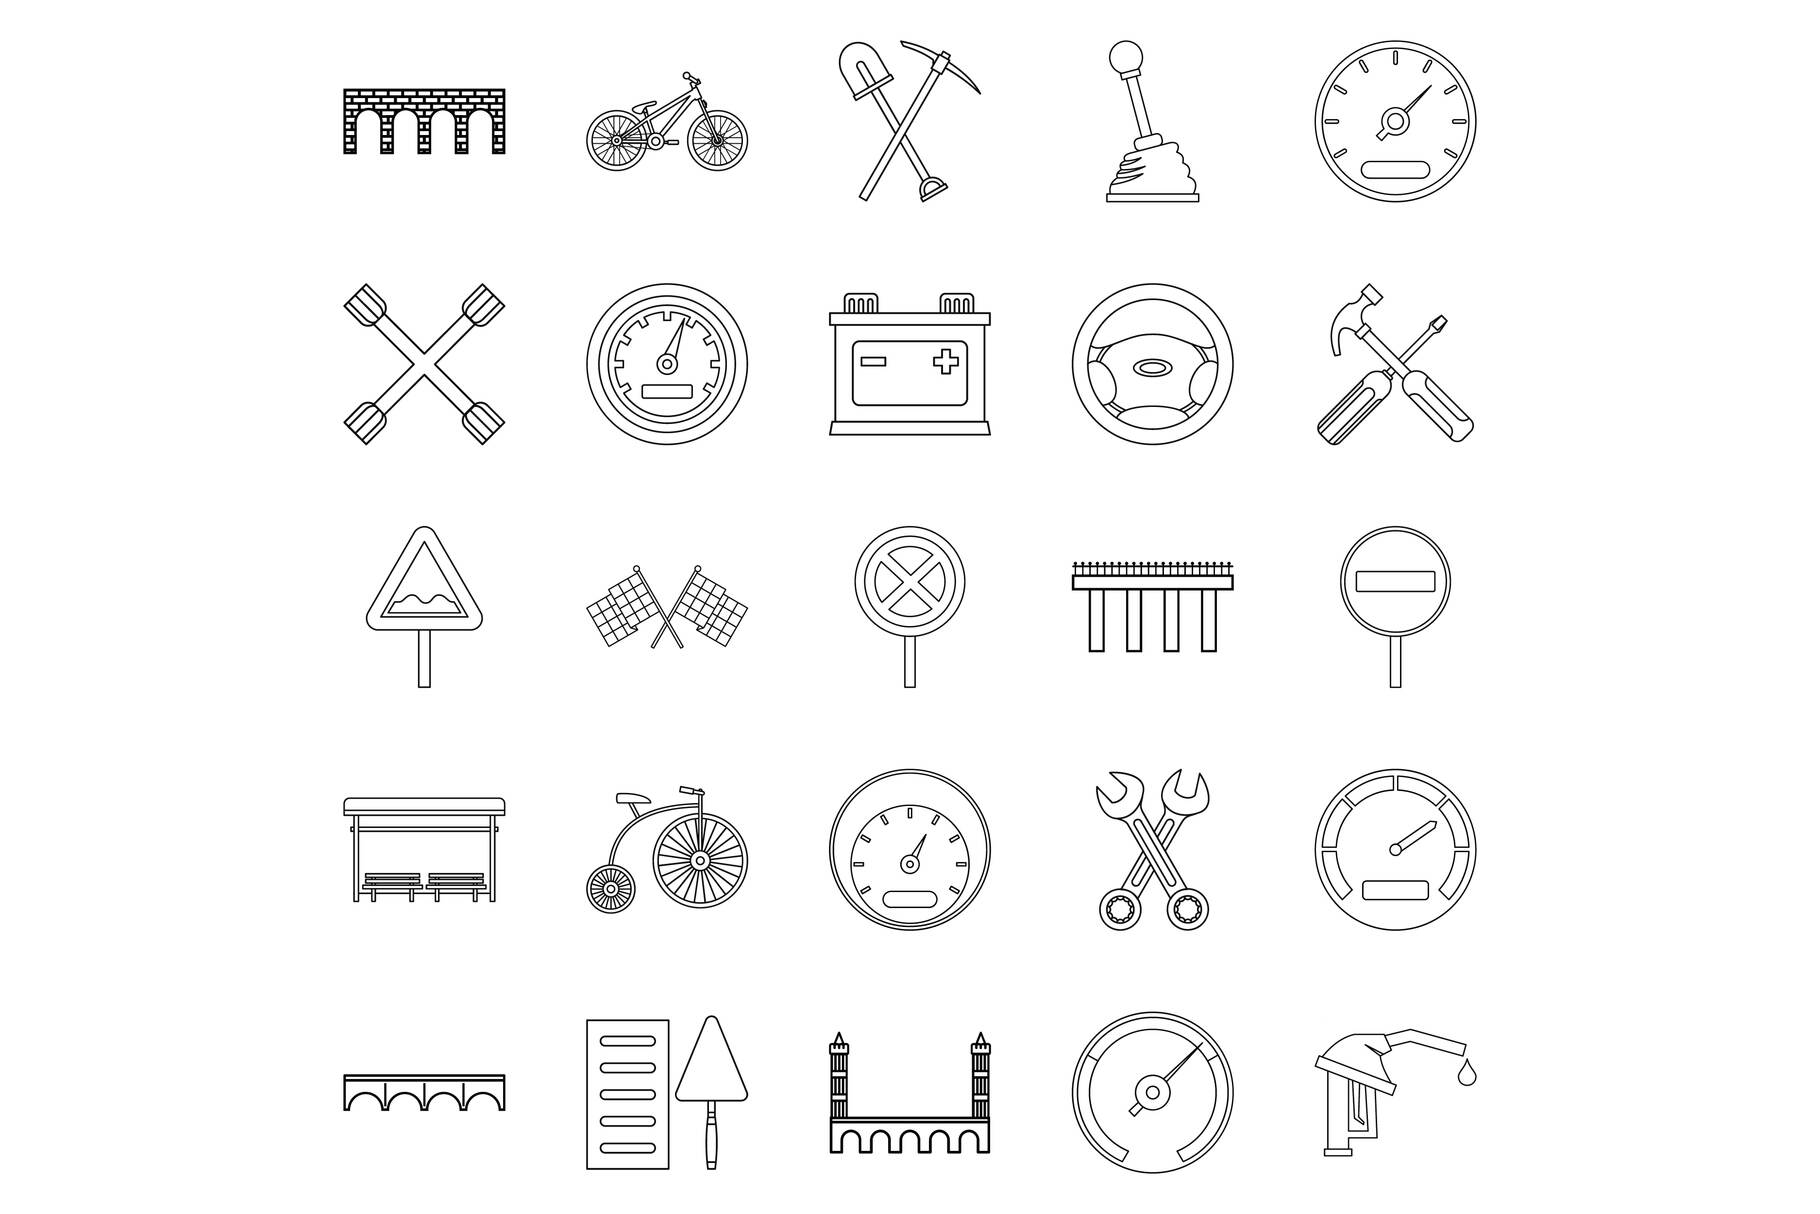 Roadbed icons set, outline style example image 1